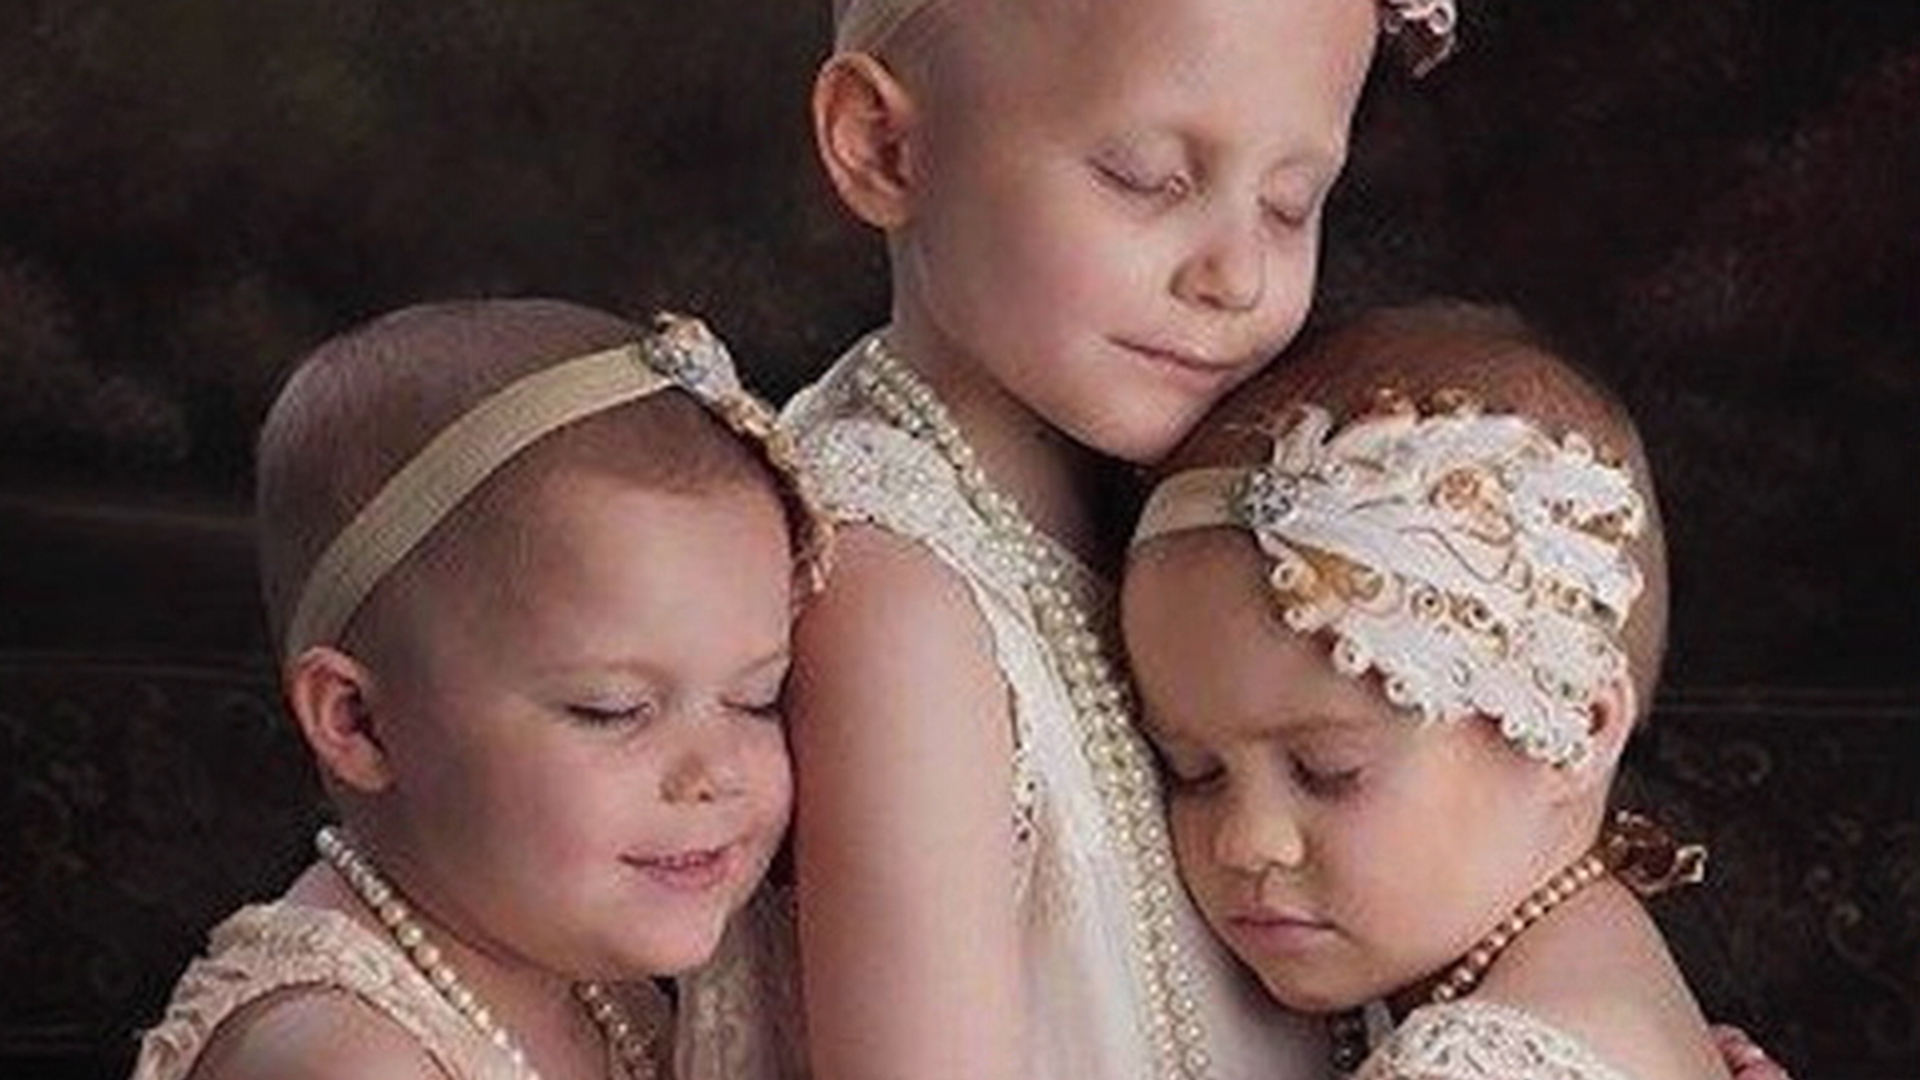 The 3 Little Girls Who Beat Cancer Recreated Their Viral Photo